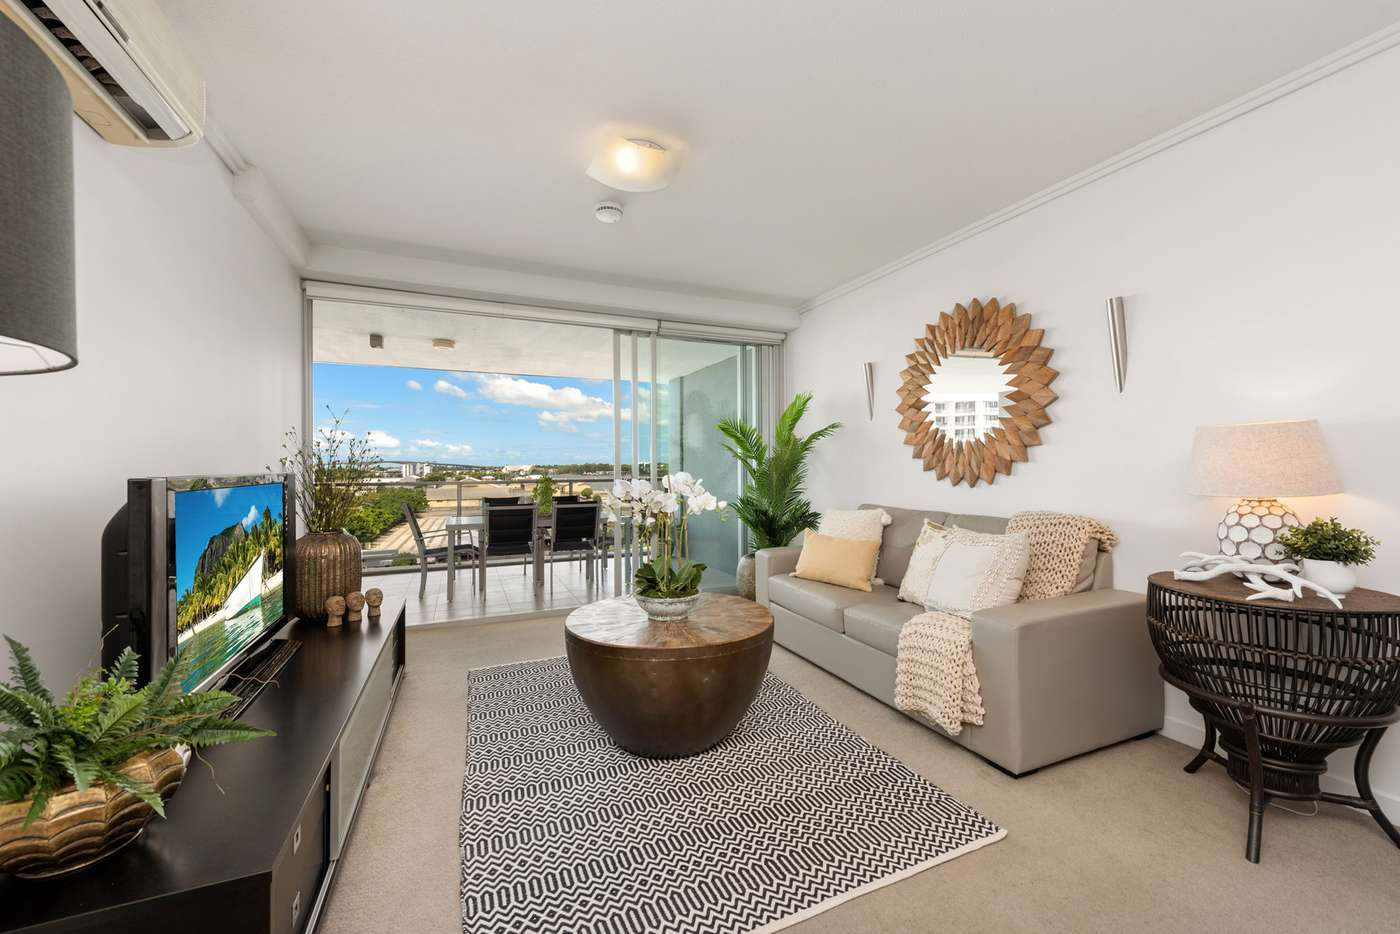 Main view of Homely apartment listing, 876/43 Hercules Street, Hamilton QLD 4007